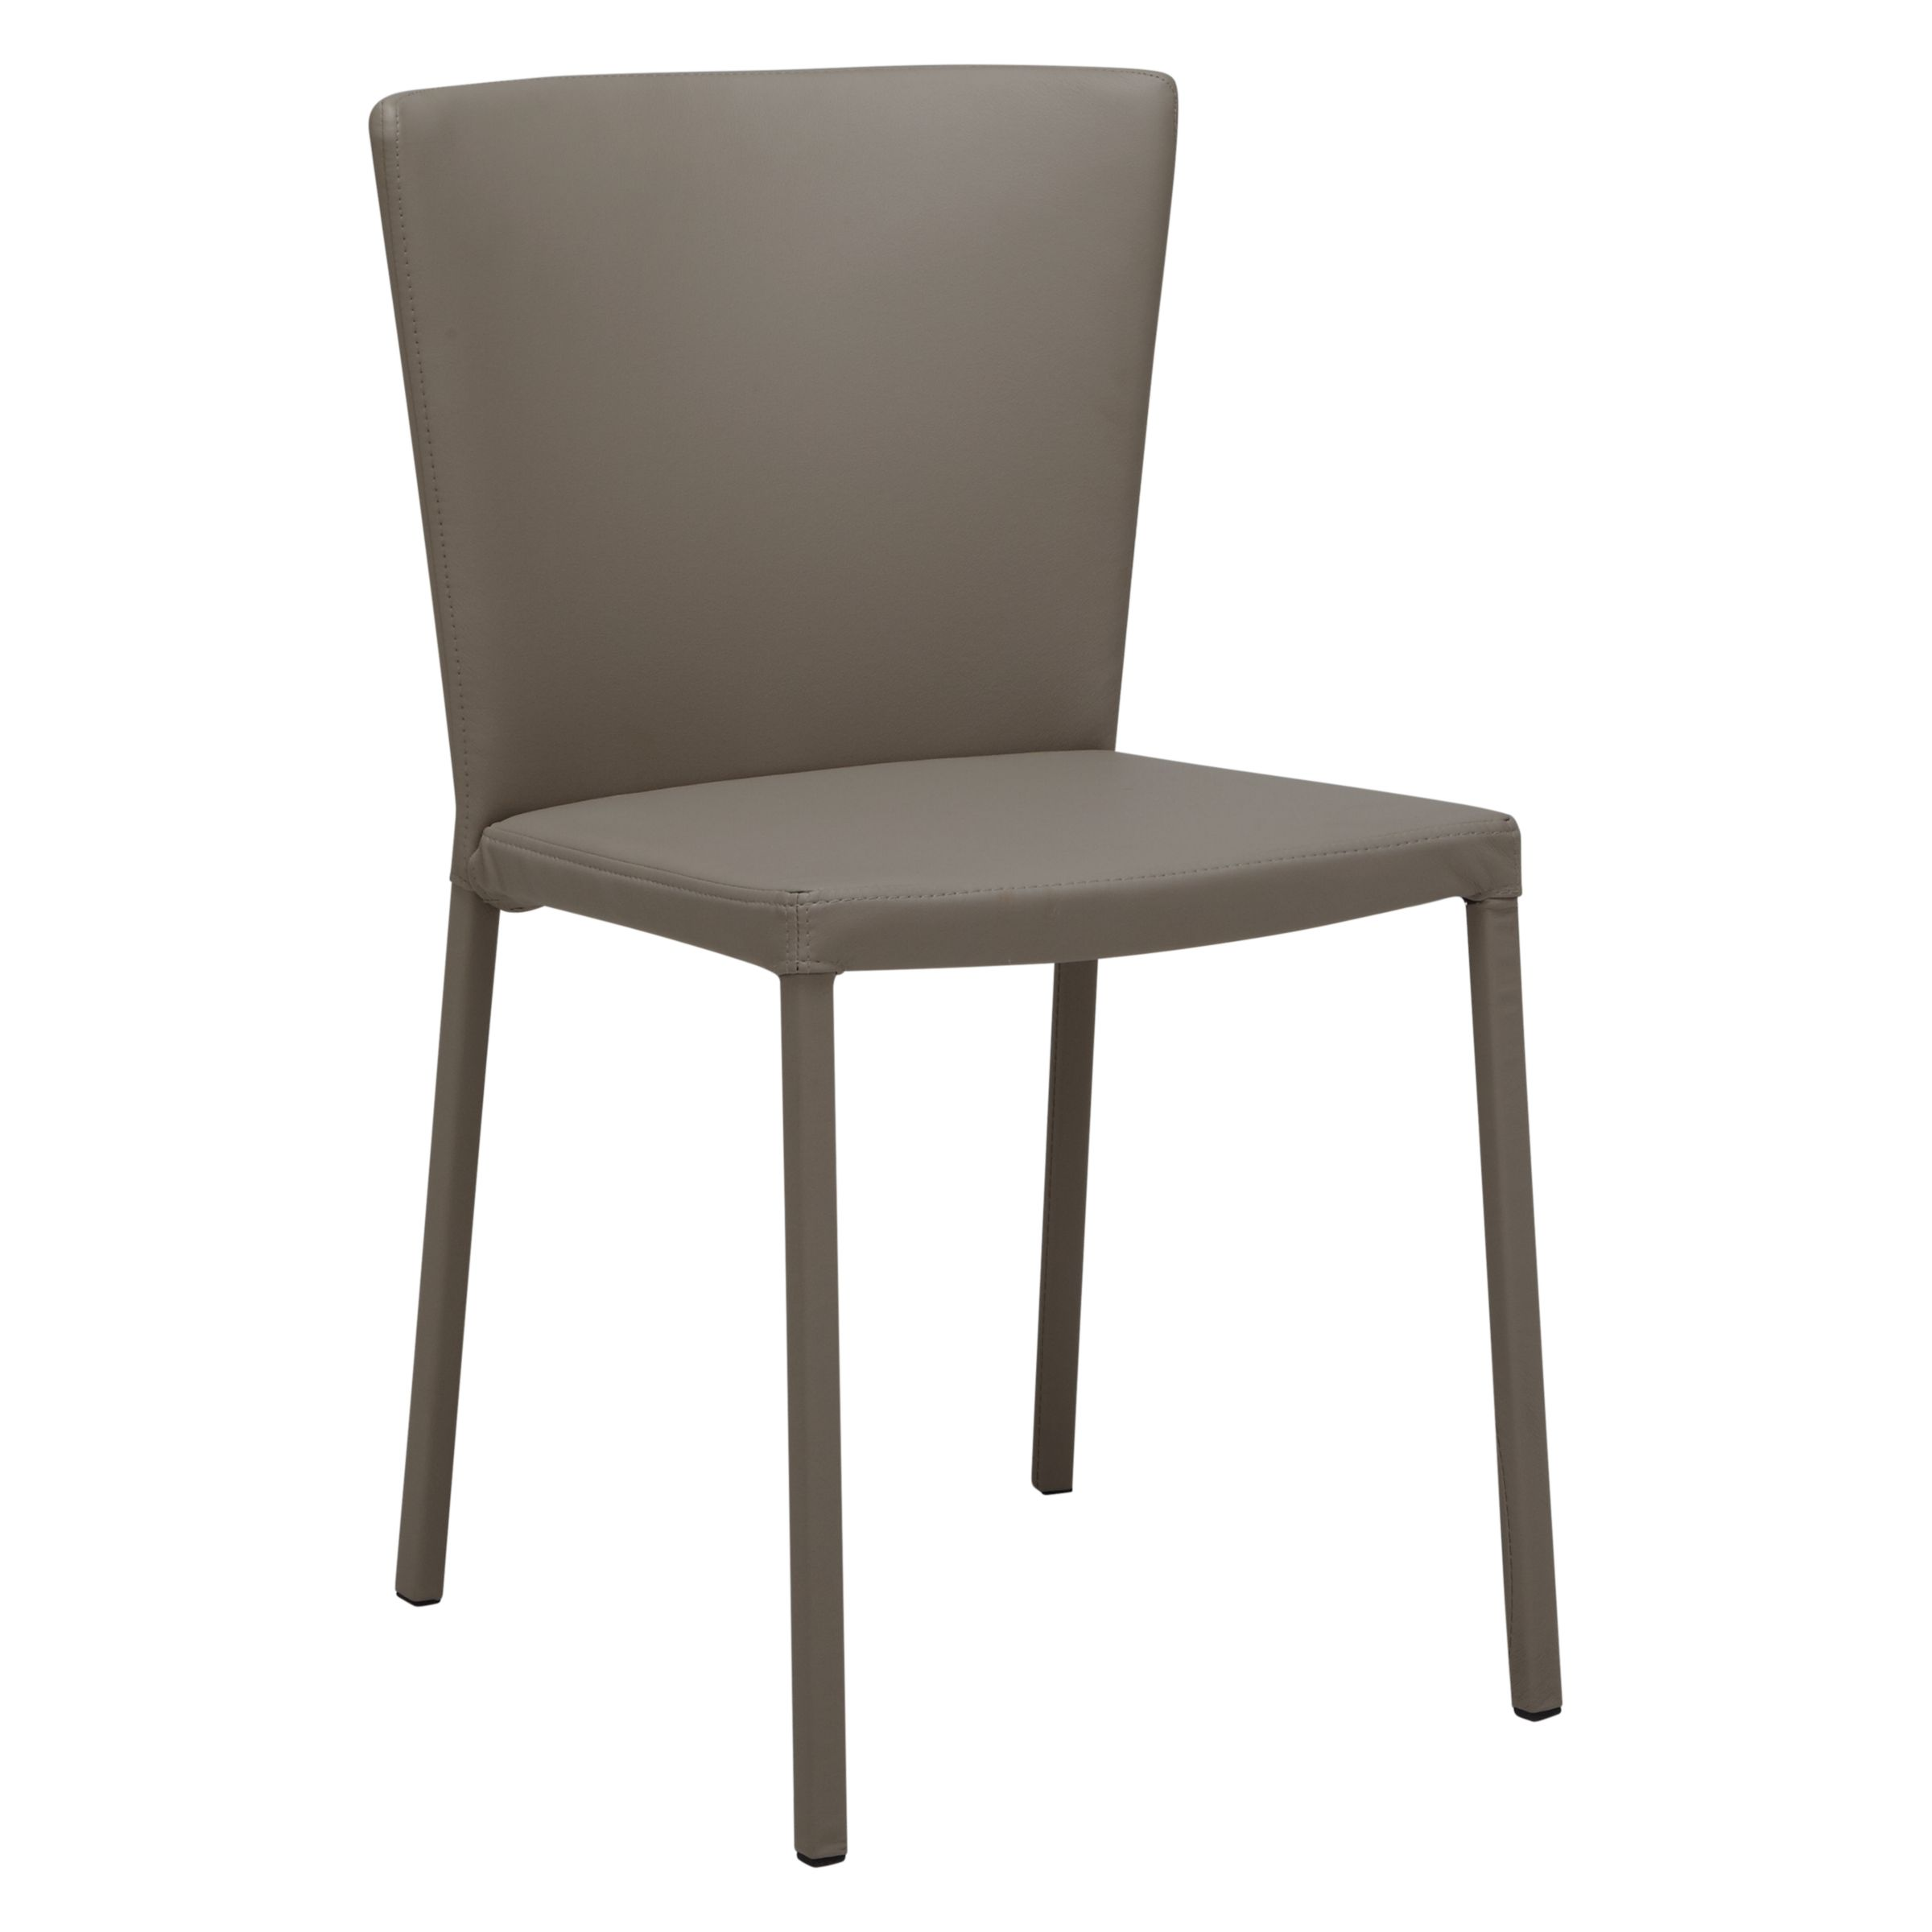 Faux leather Dining Chairs John Lewis